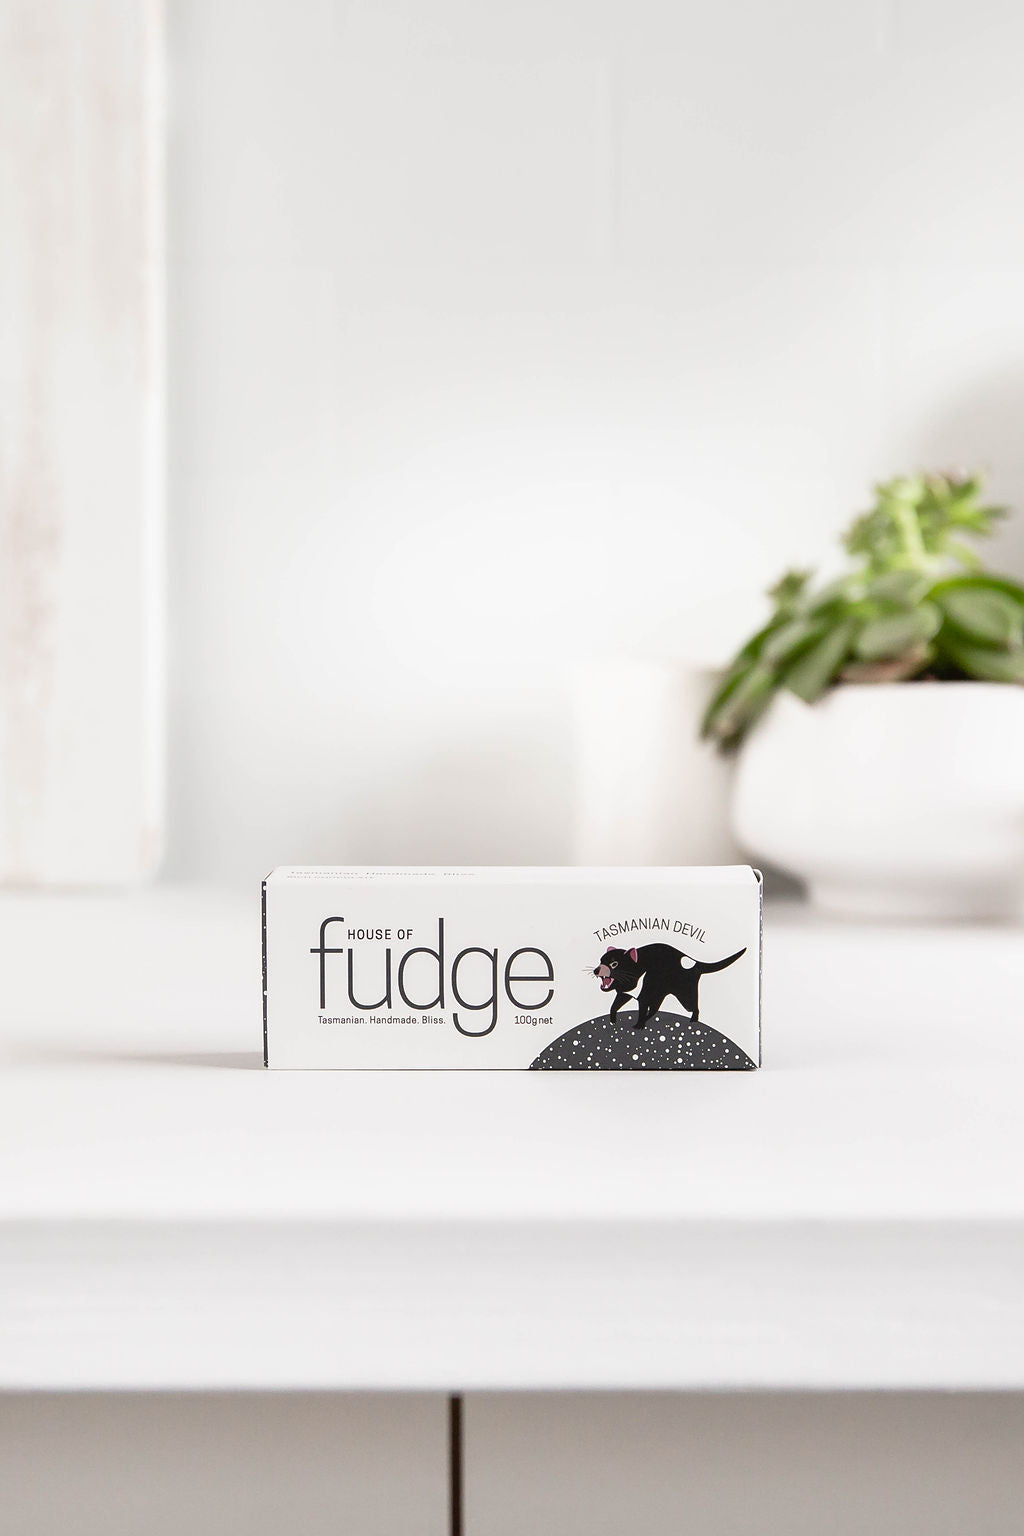 House of Fudge Tasmanian Devil Rich Chocolate - December Limited Offer